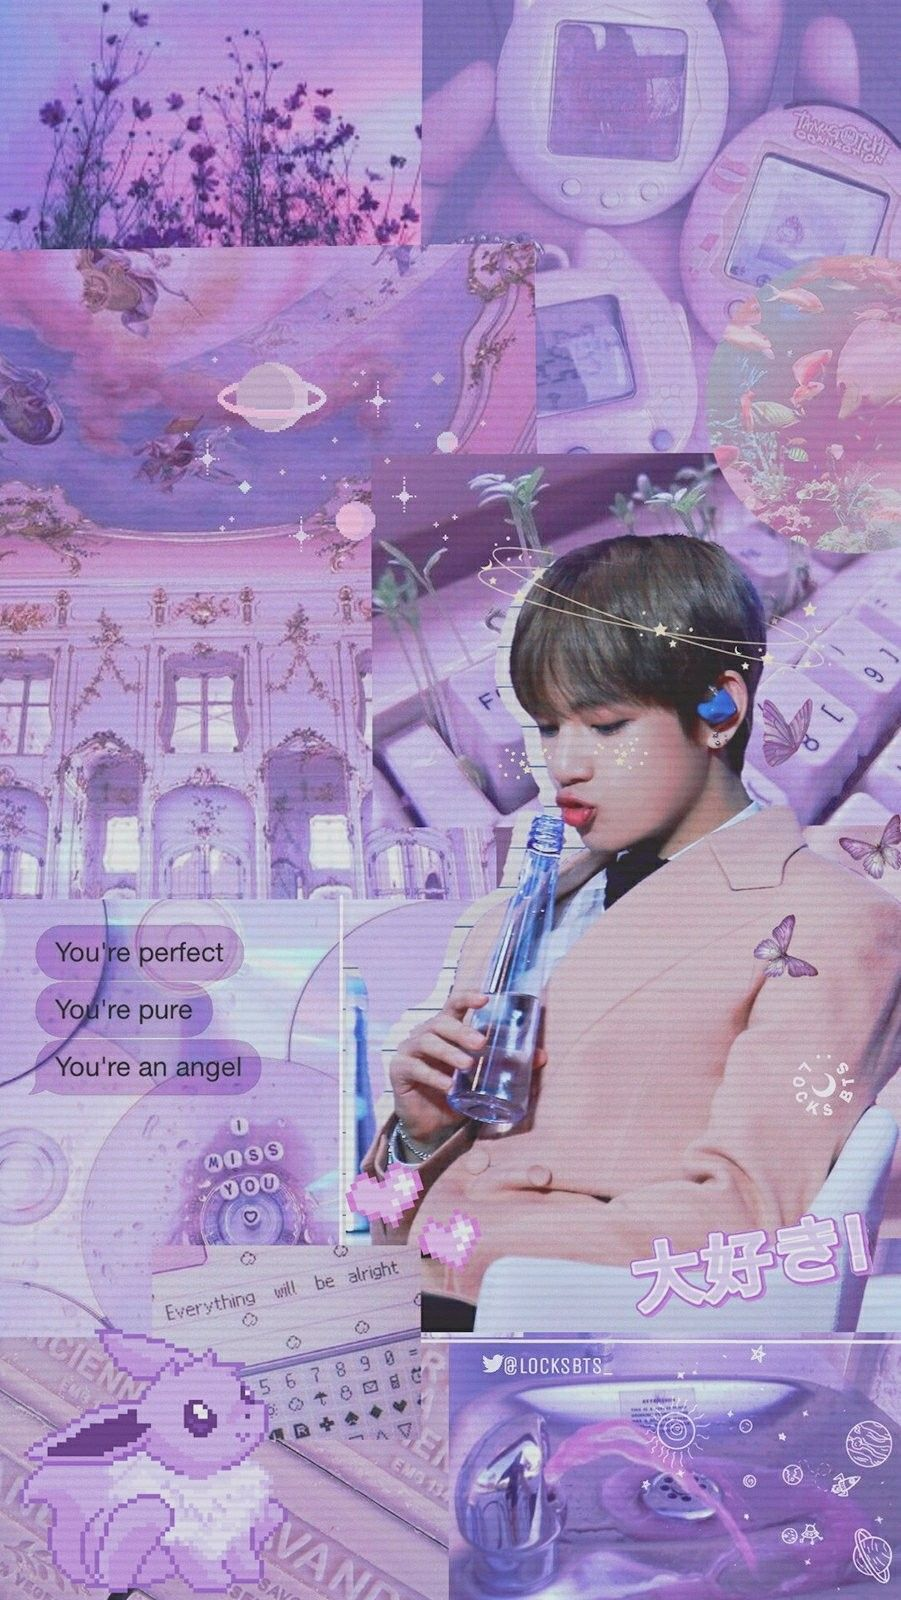 Pin By 𝐡𝐚𝐧𝐞𝐞𝐧 On Wallpapers ˎˊ Purple Aesthetic Kim Taehyung Wallpaper Bts Wallpaper